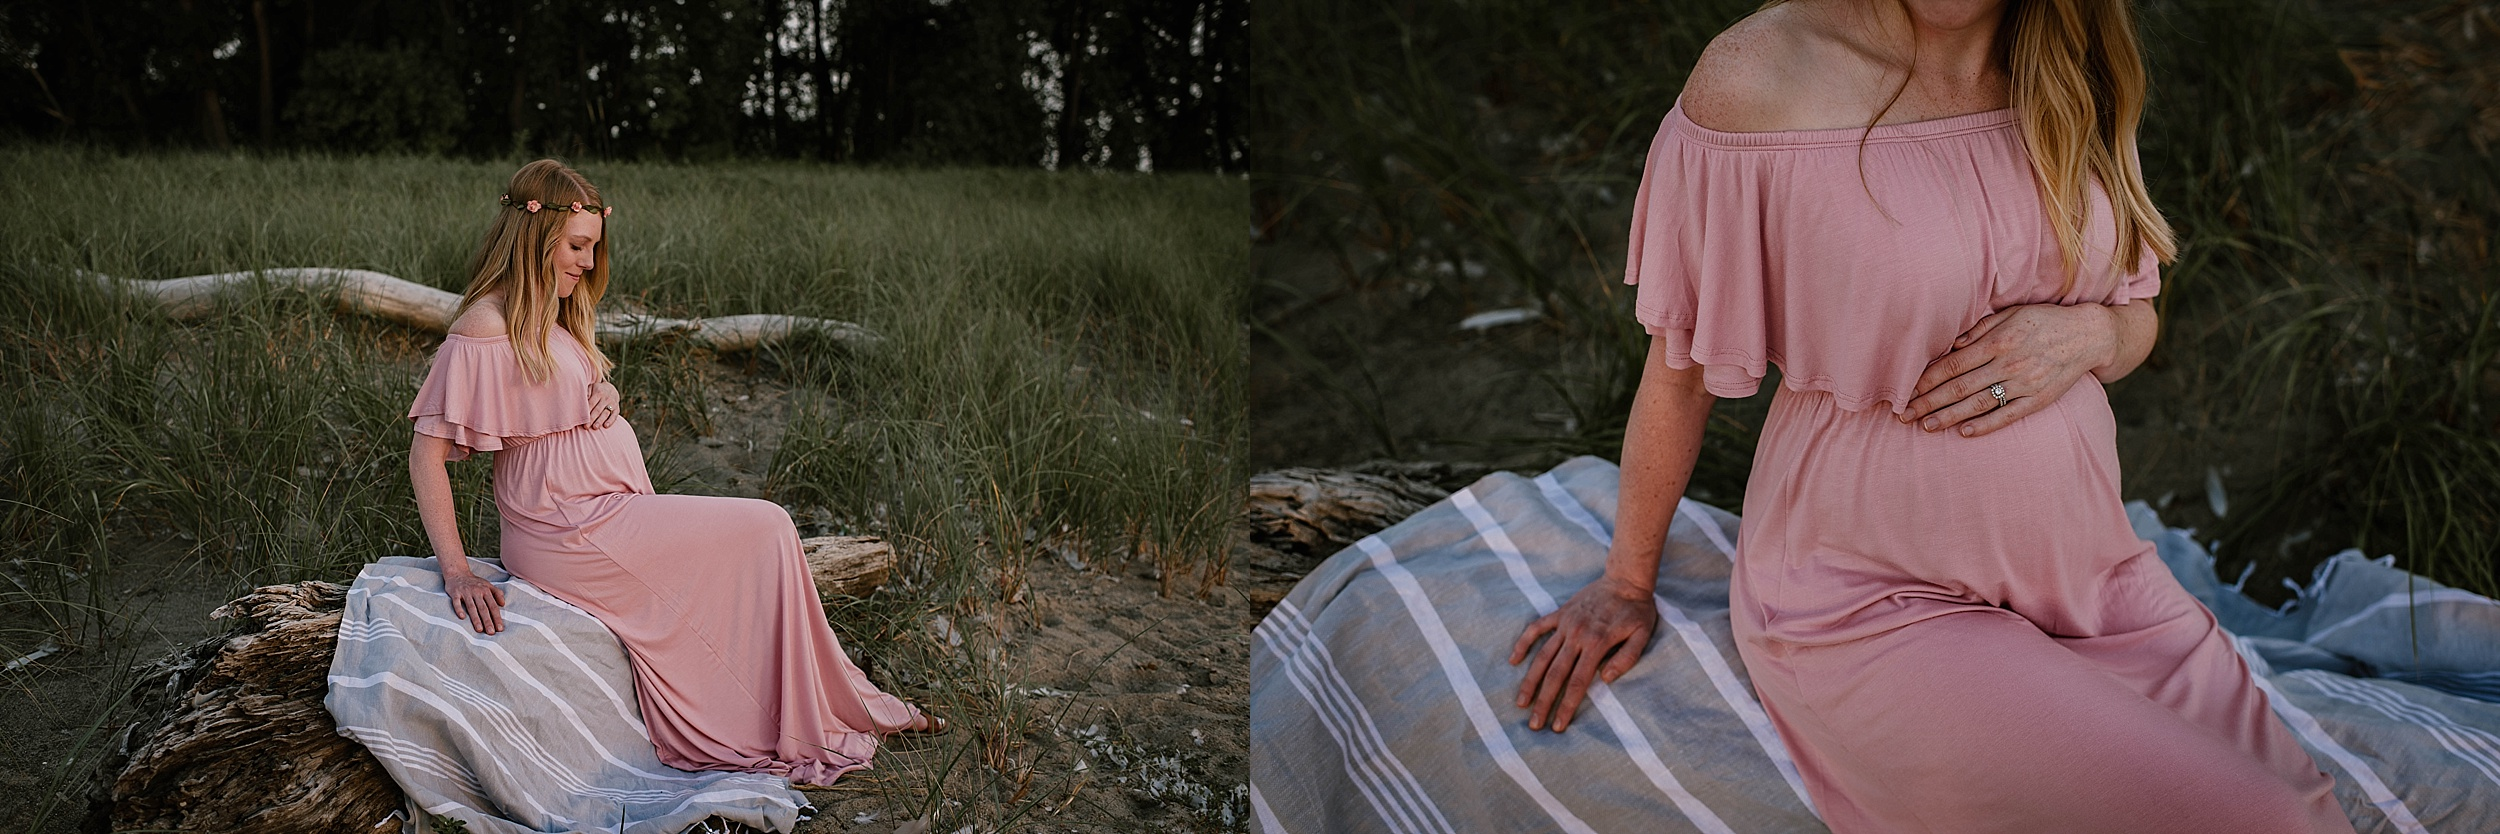 lauren-grayson-photography-cleveland-ohio-photographer-mentor-headlands-beach-maternity-session-2018_0737.jpg